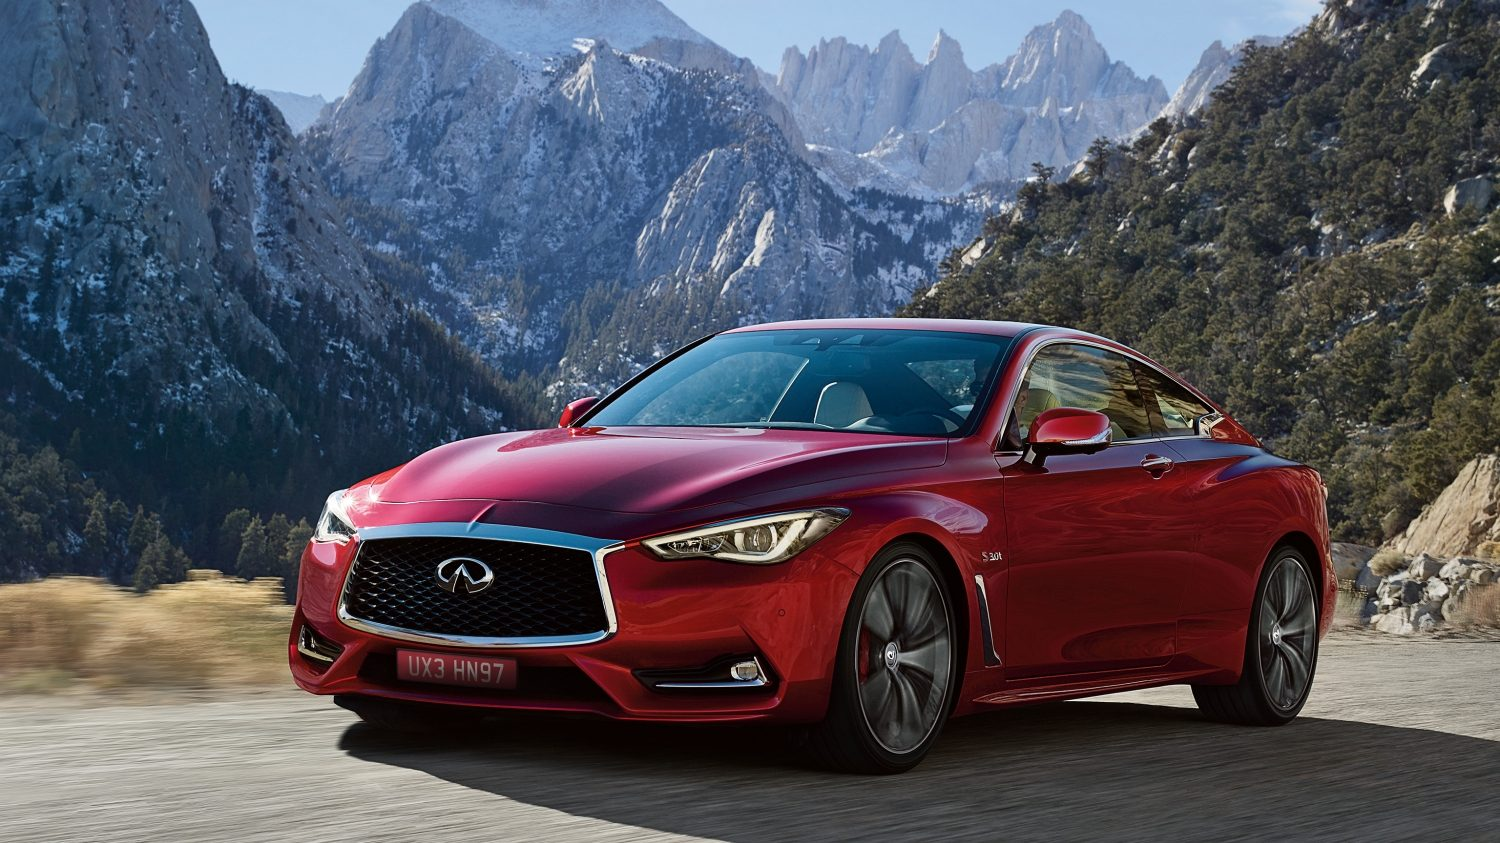 Bose Speakers For Cars >> All-New Infiniti Q60 Coupe - Luxury High Performance Sports Coupe Car